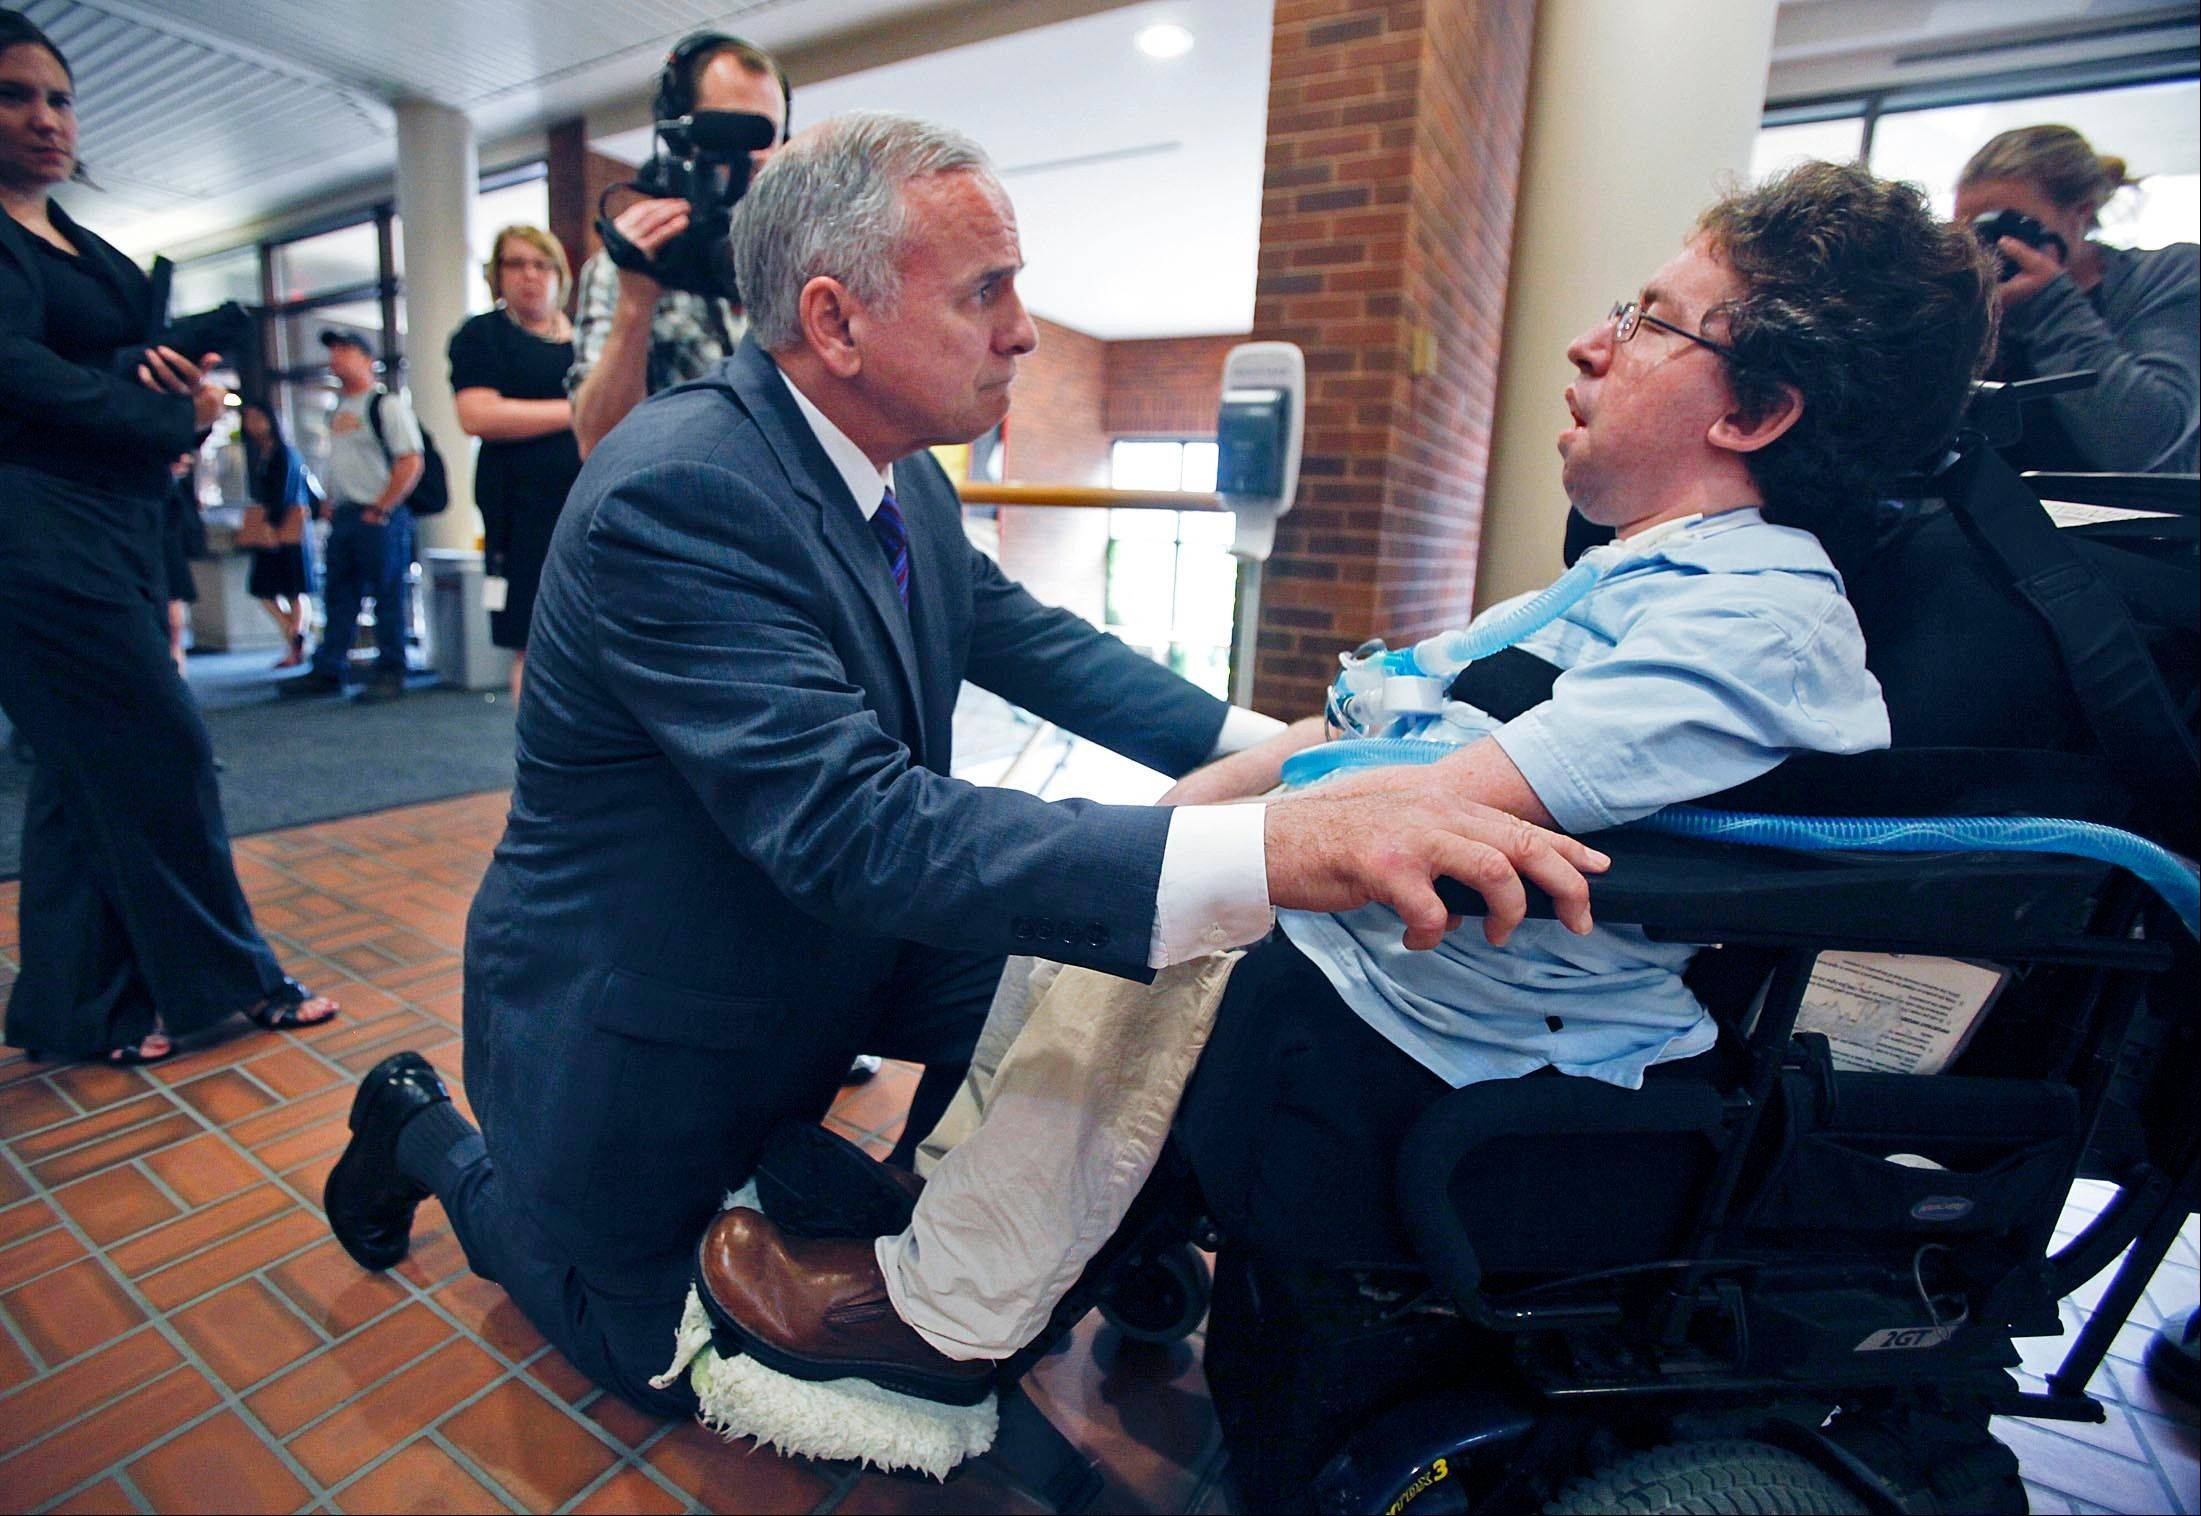 Minnesota Gov. Mark Dayton gets down on a knee to talk to Mark Siegel, a state employee and blogger, after Dayton appeared at the University of Minnesota's Hubert H. Humphrey School Thursday and announced he would seek a budget deal with GOP leaders.